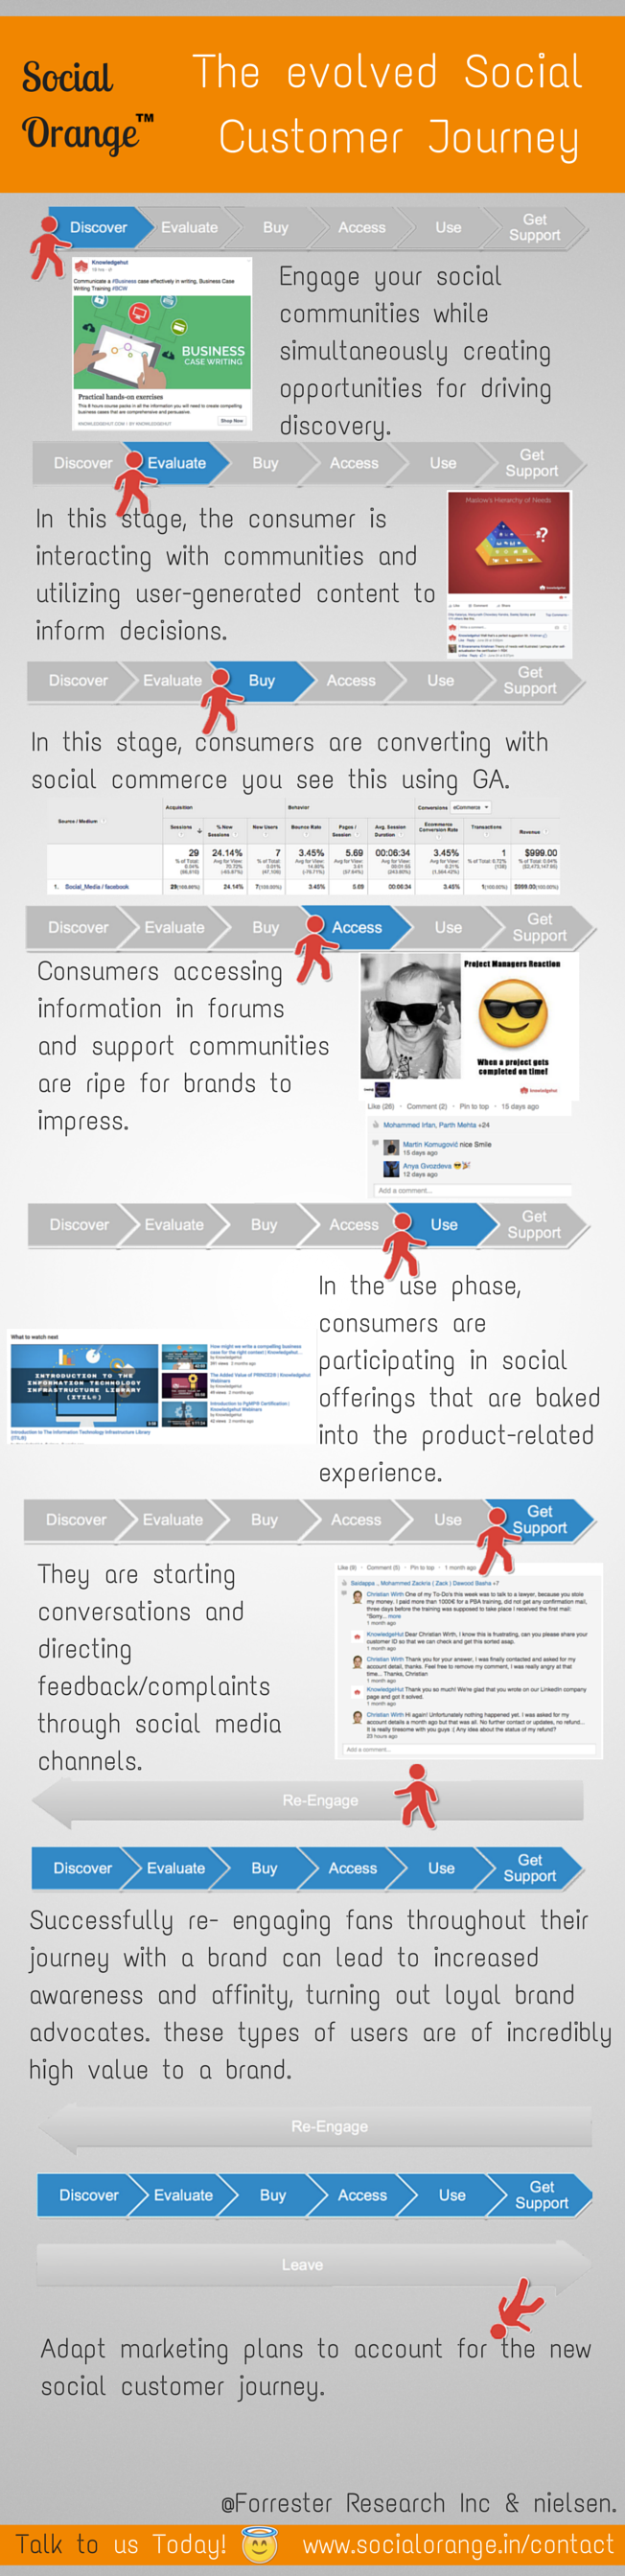 socialcustomer journey